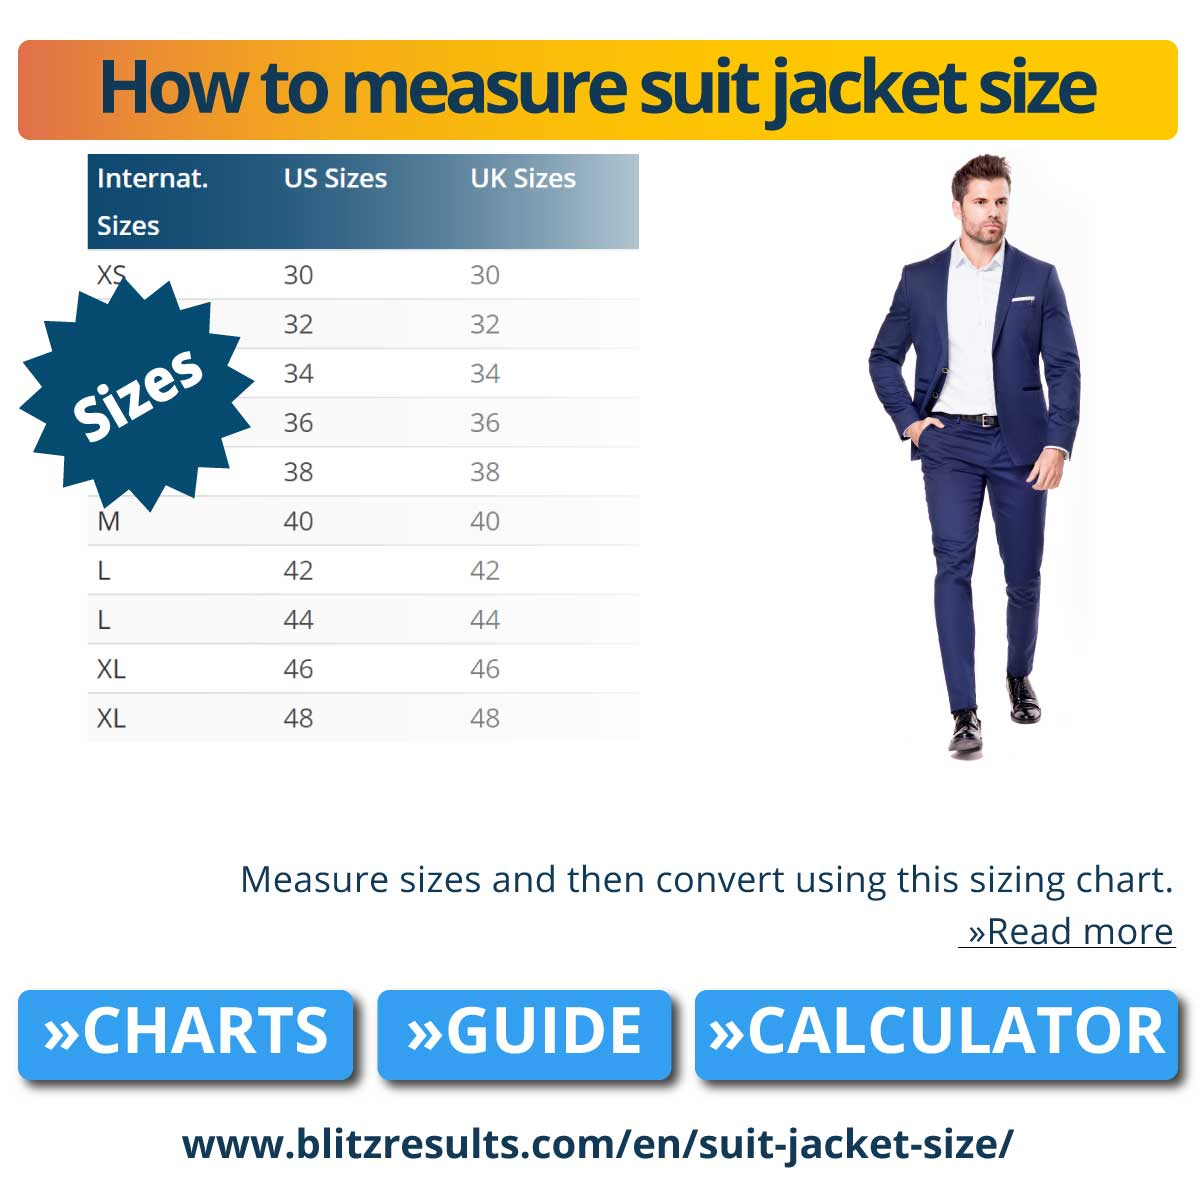 How to measure suit jacket size